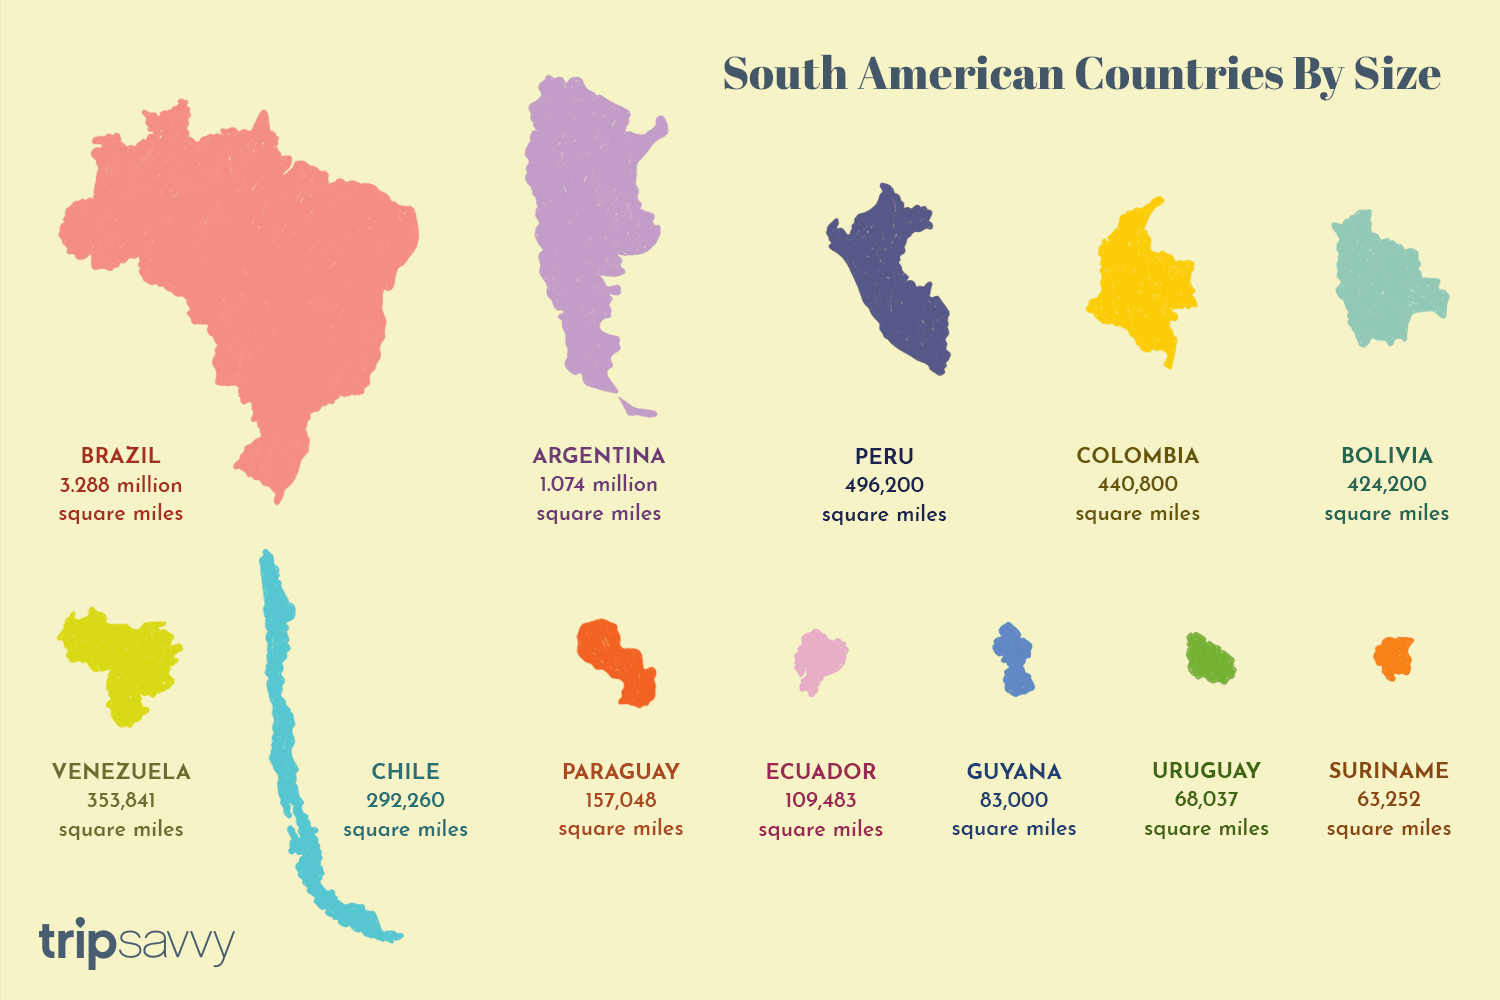 Countries In South America By Size